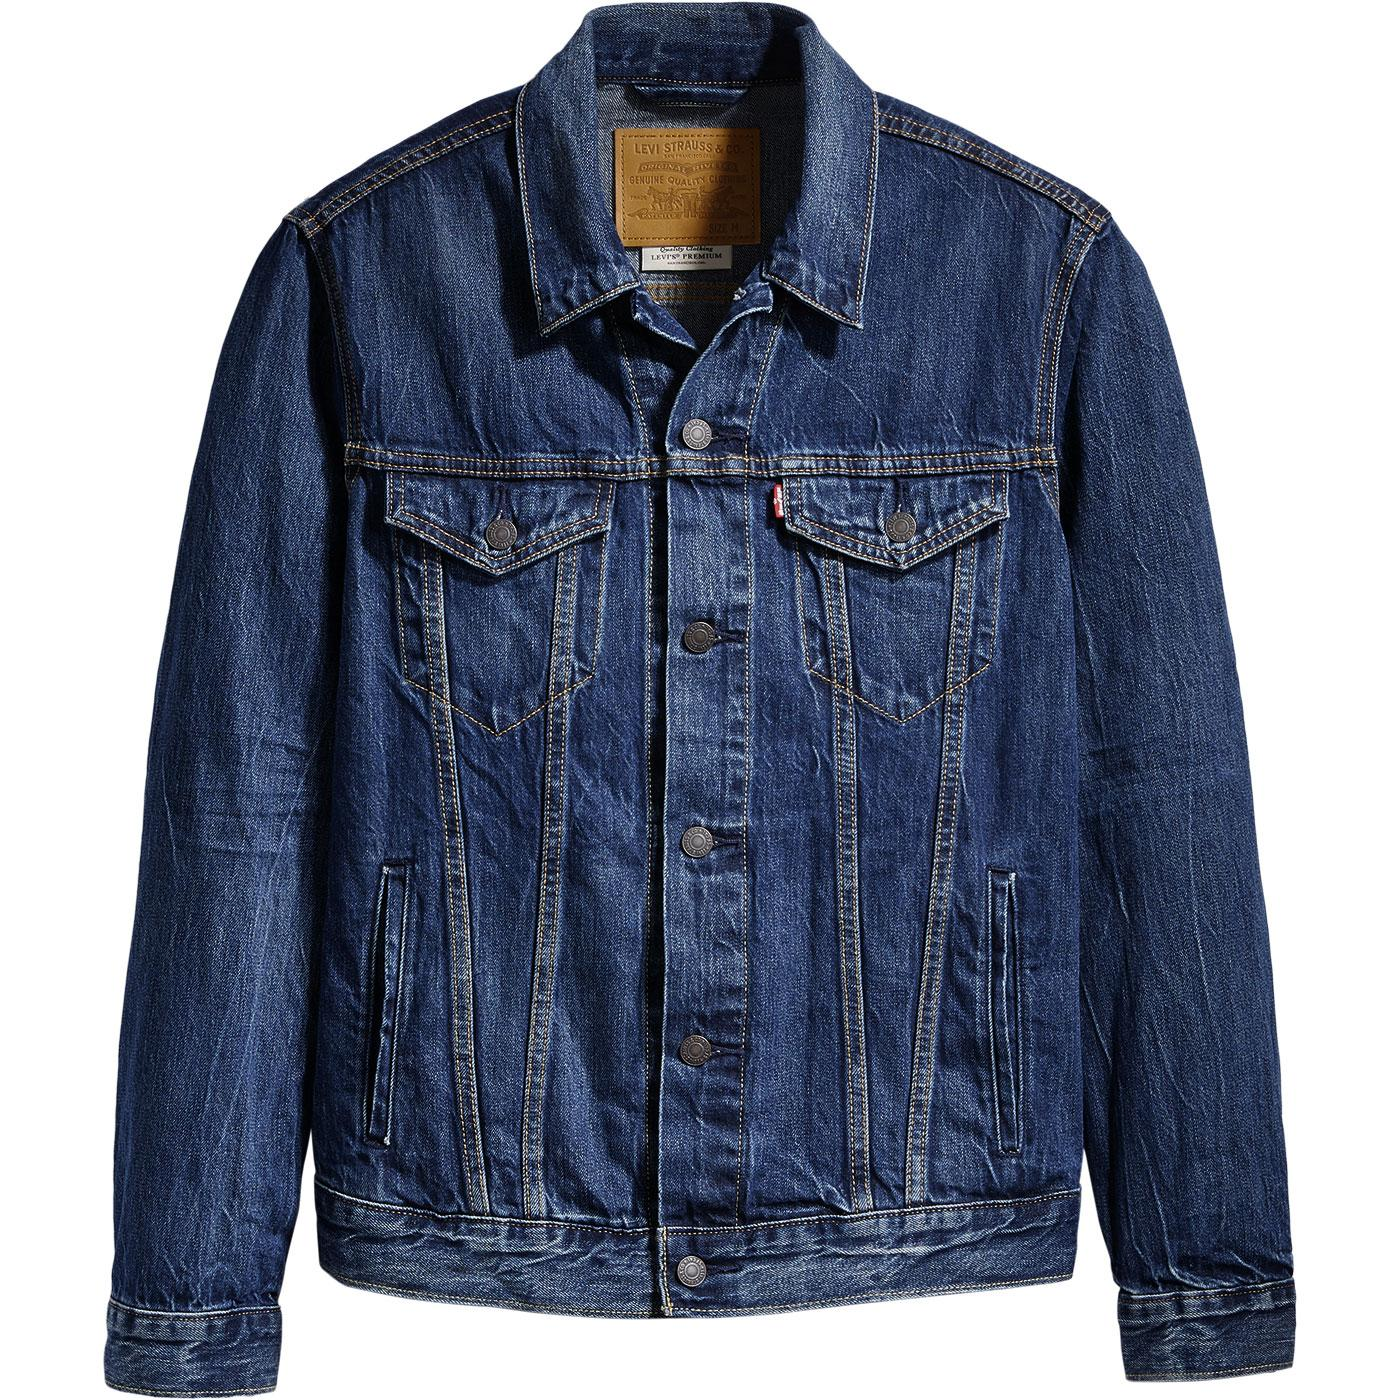 LEVI'S Retro 60s Mod Denim Trucker Jacket (Palmer)